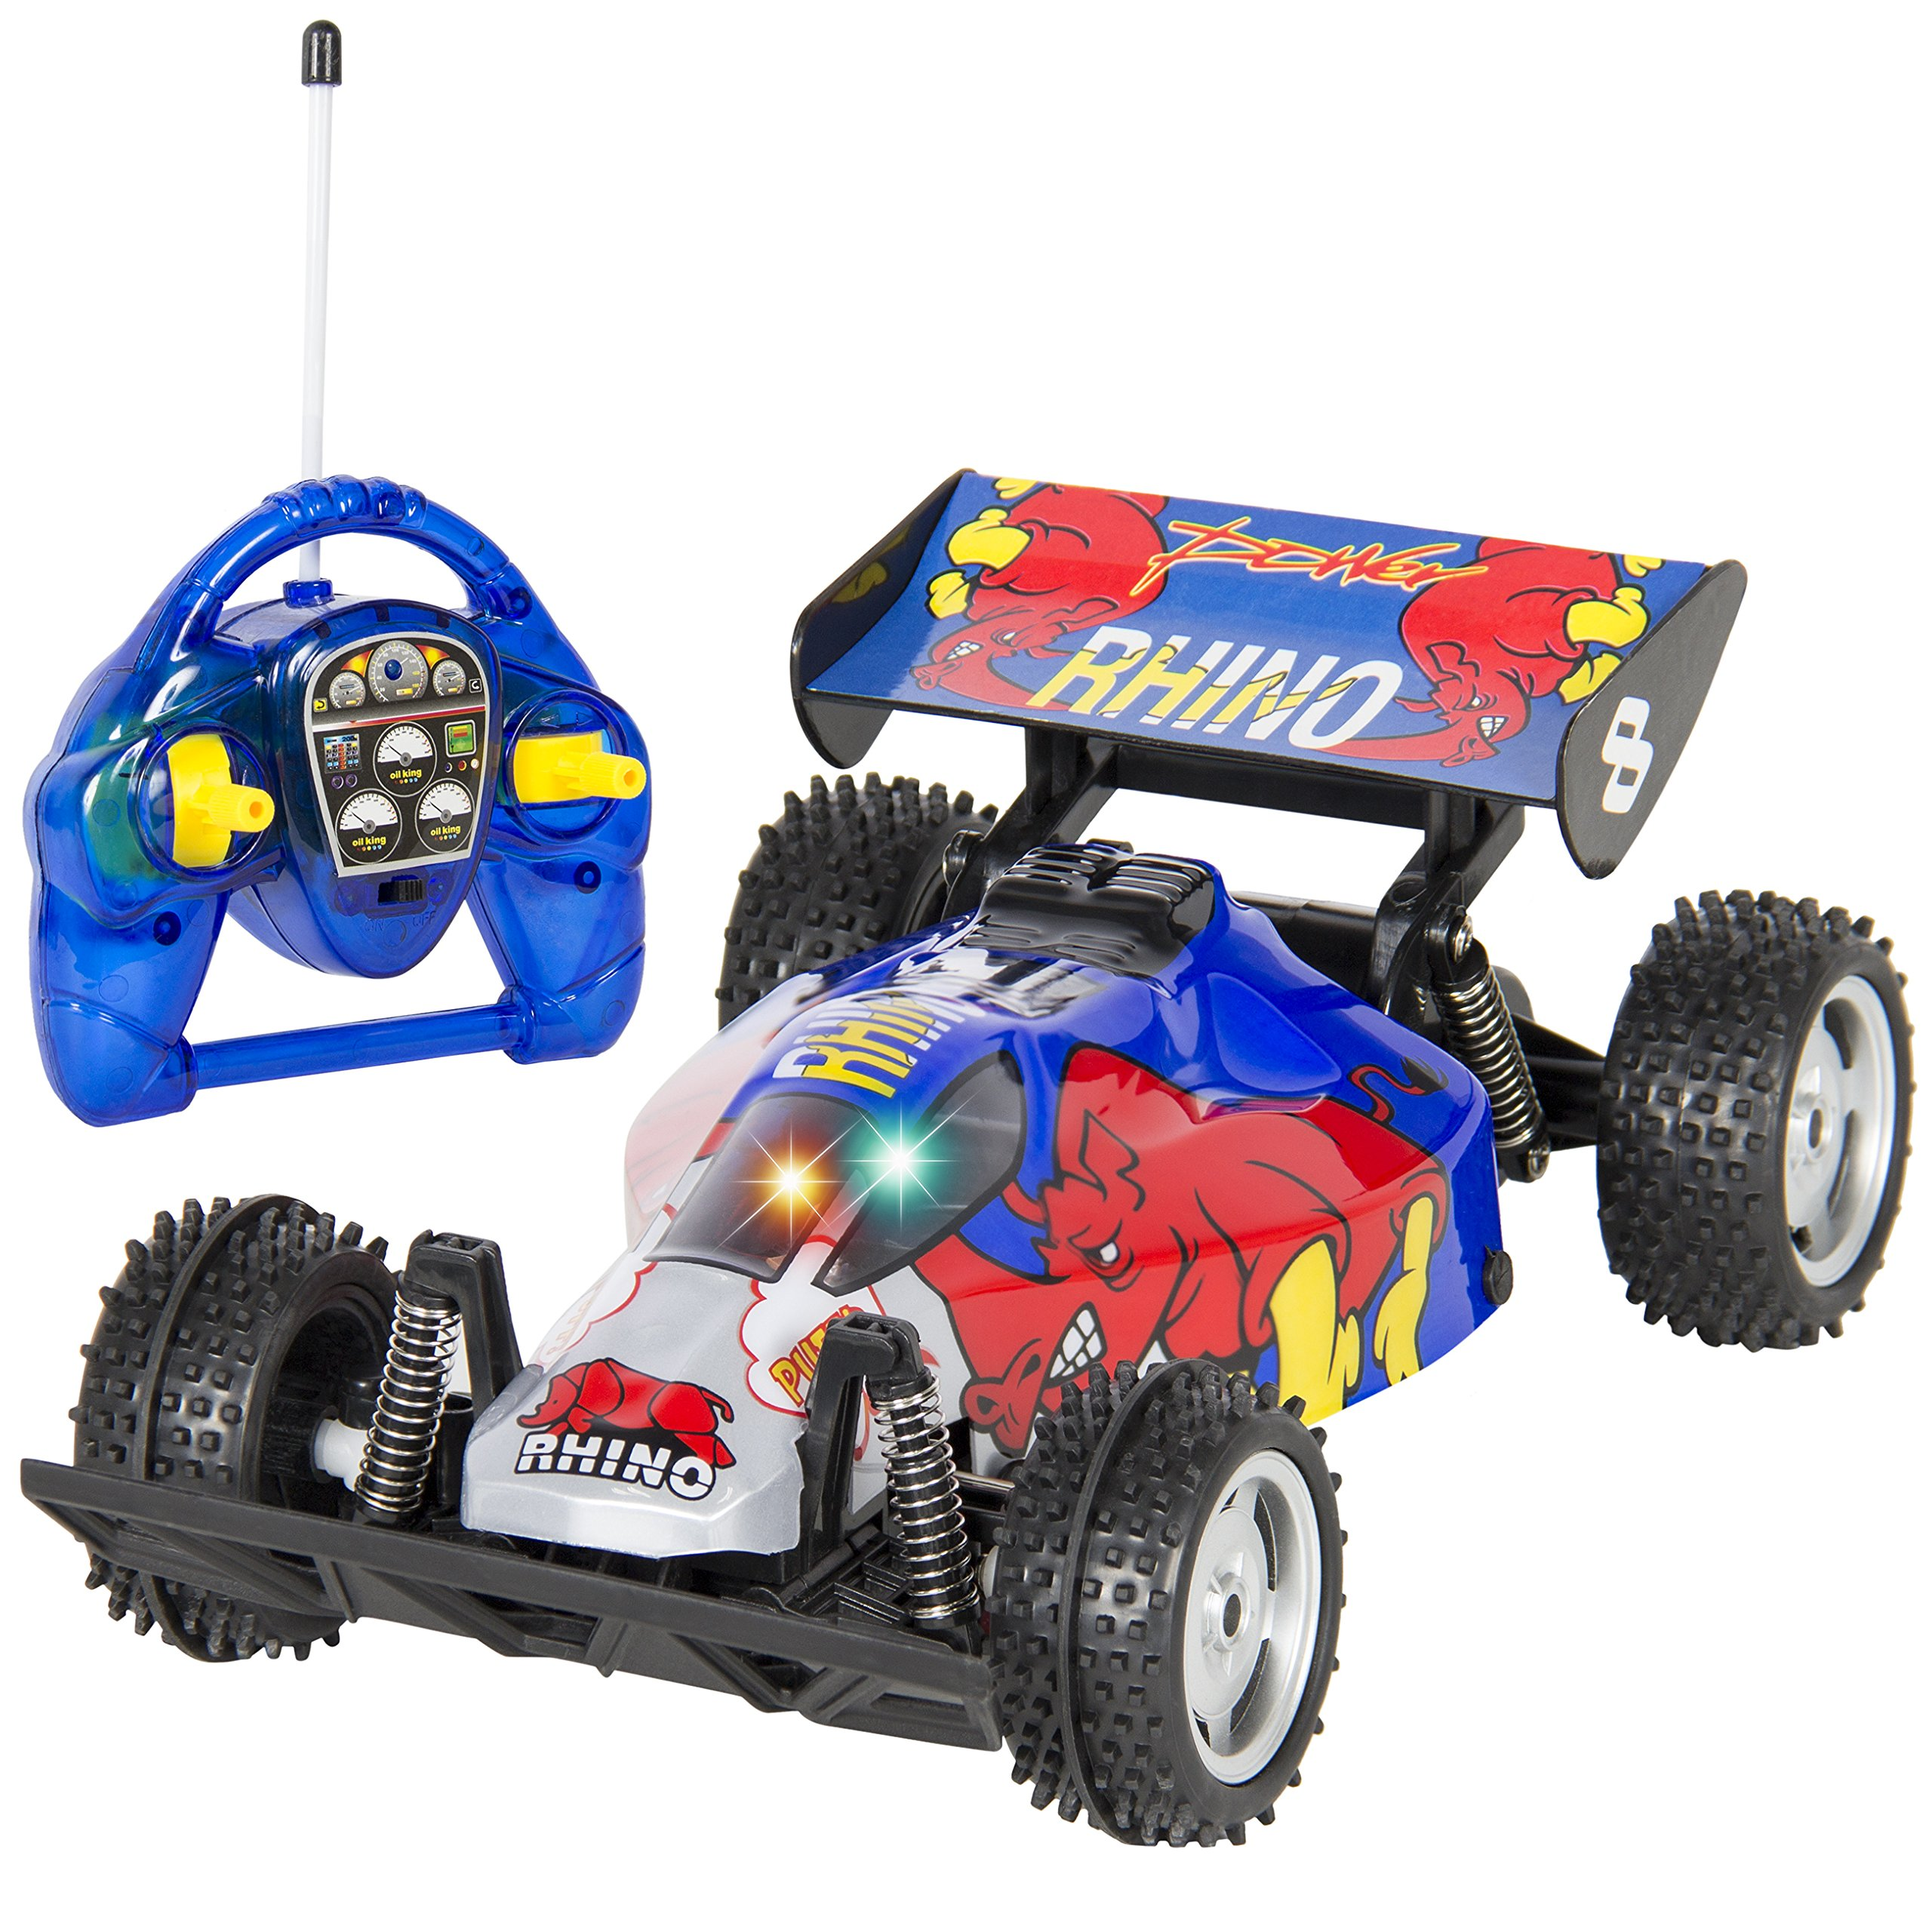 Details about Best Choice Products Blue Rhino RC Remote Control Super Fast  Racing Car Bu